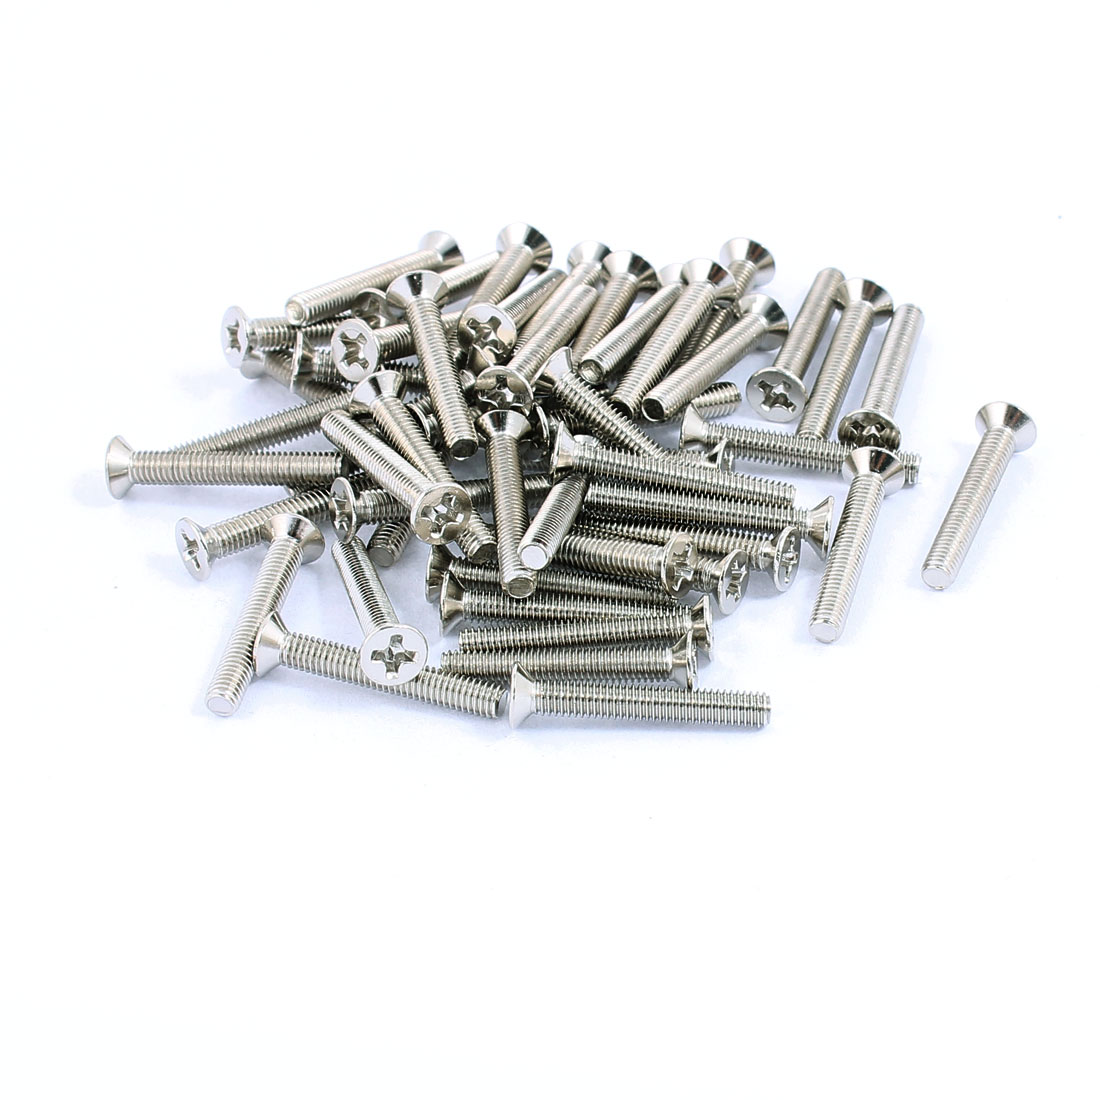 50pcs M3x20mm Stainless Steel Countersunk Flat Head Phillips Machine Screws Bolts